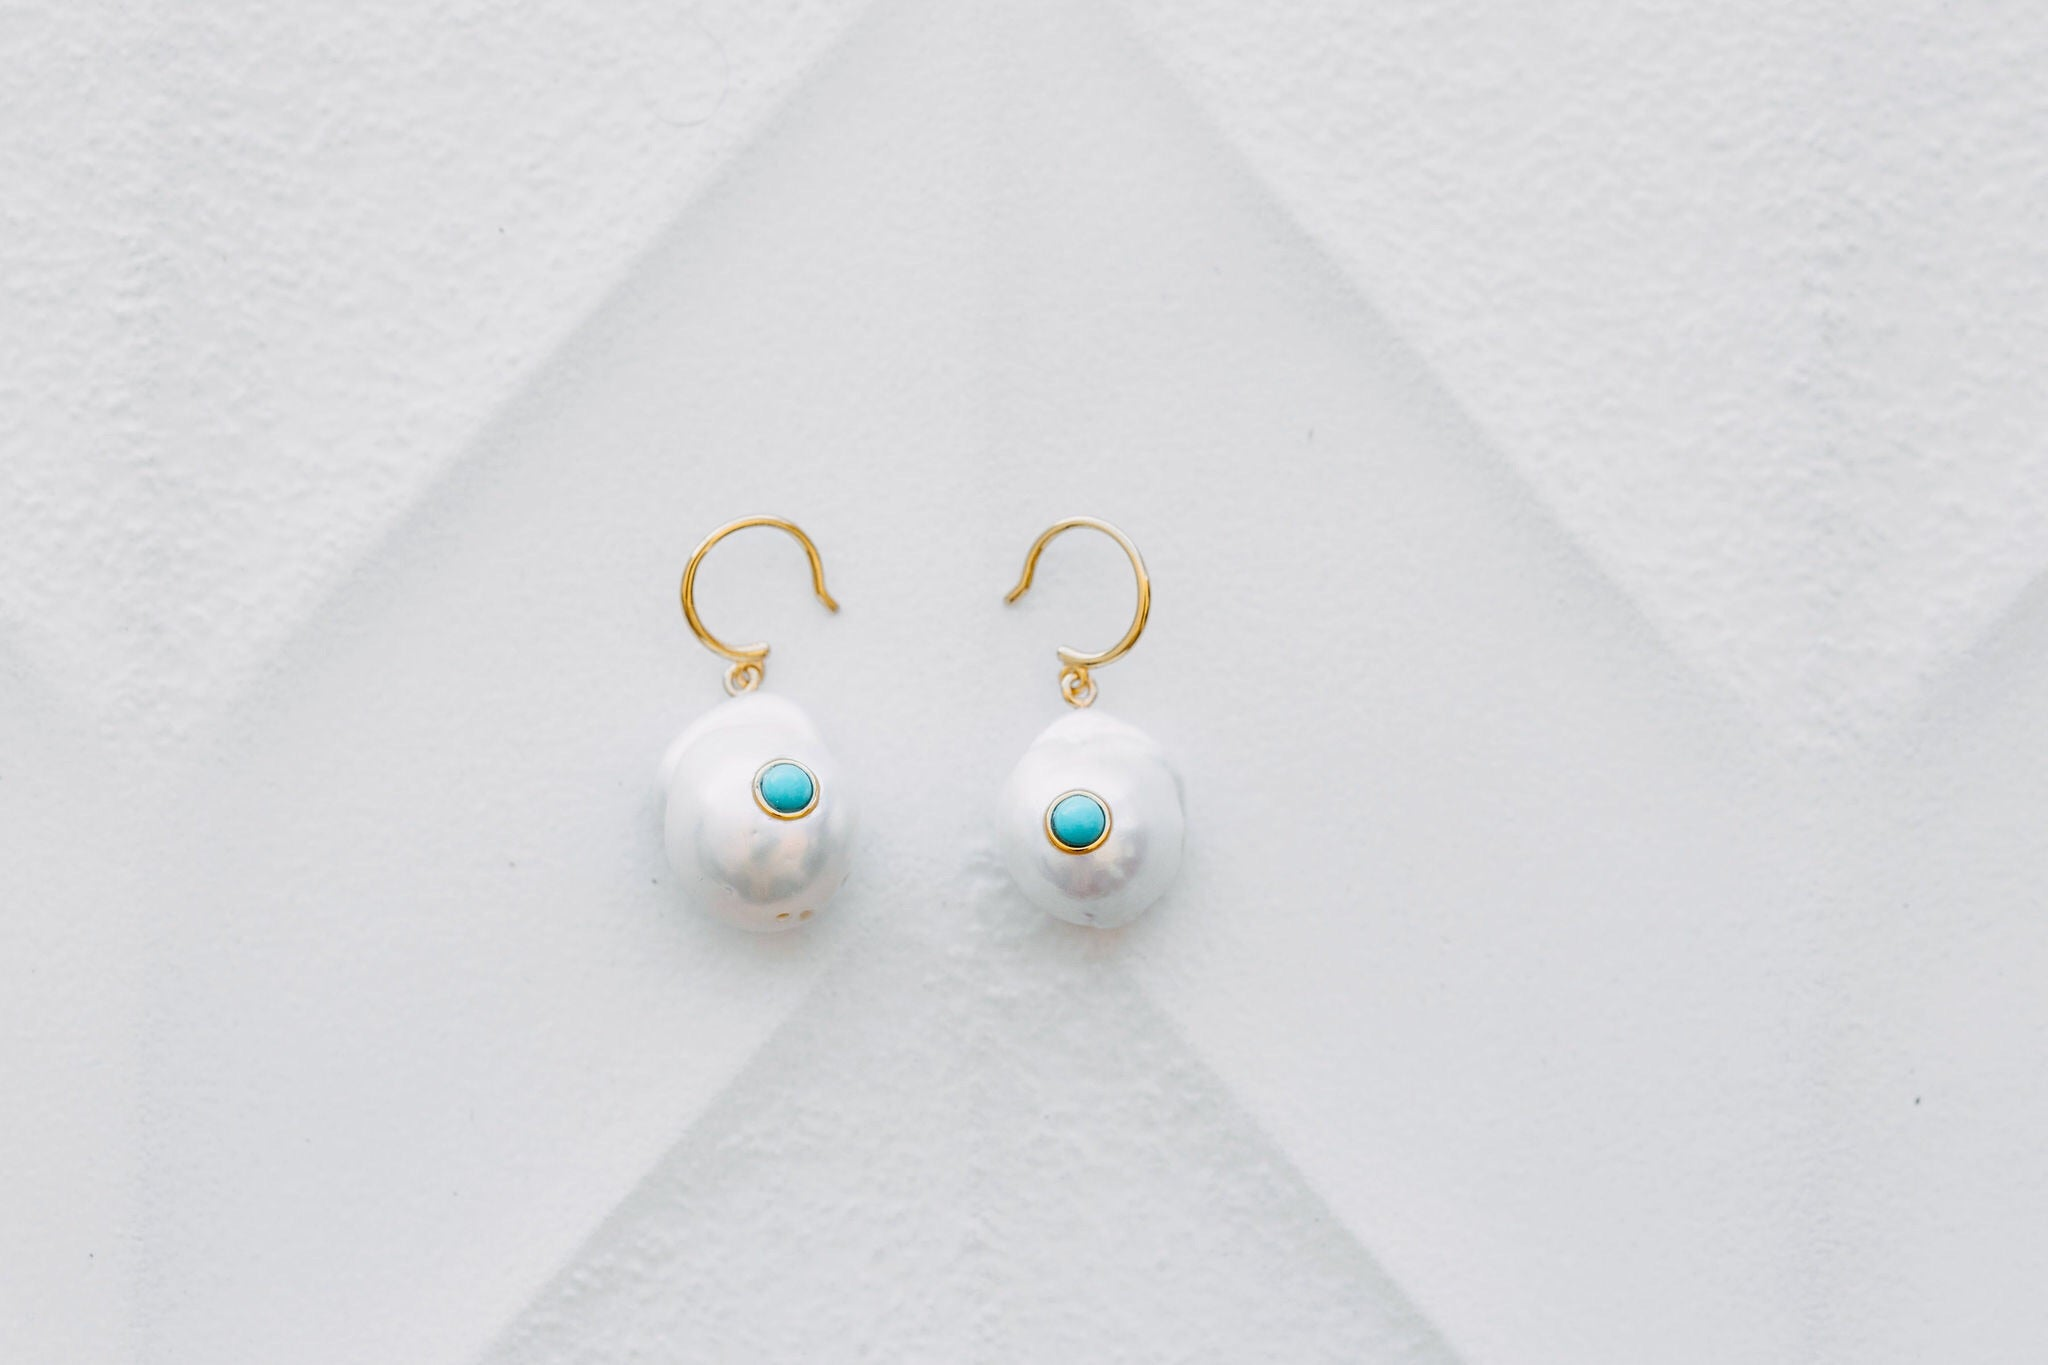 Turquoise Bay Earrings - Yellow Gold